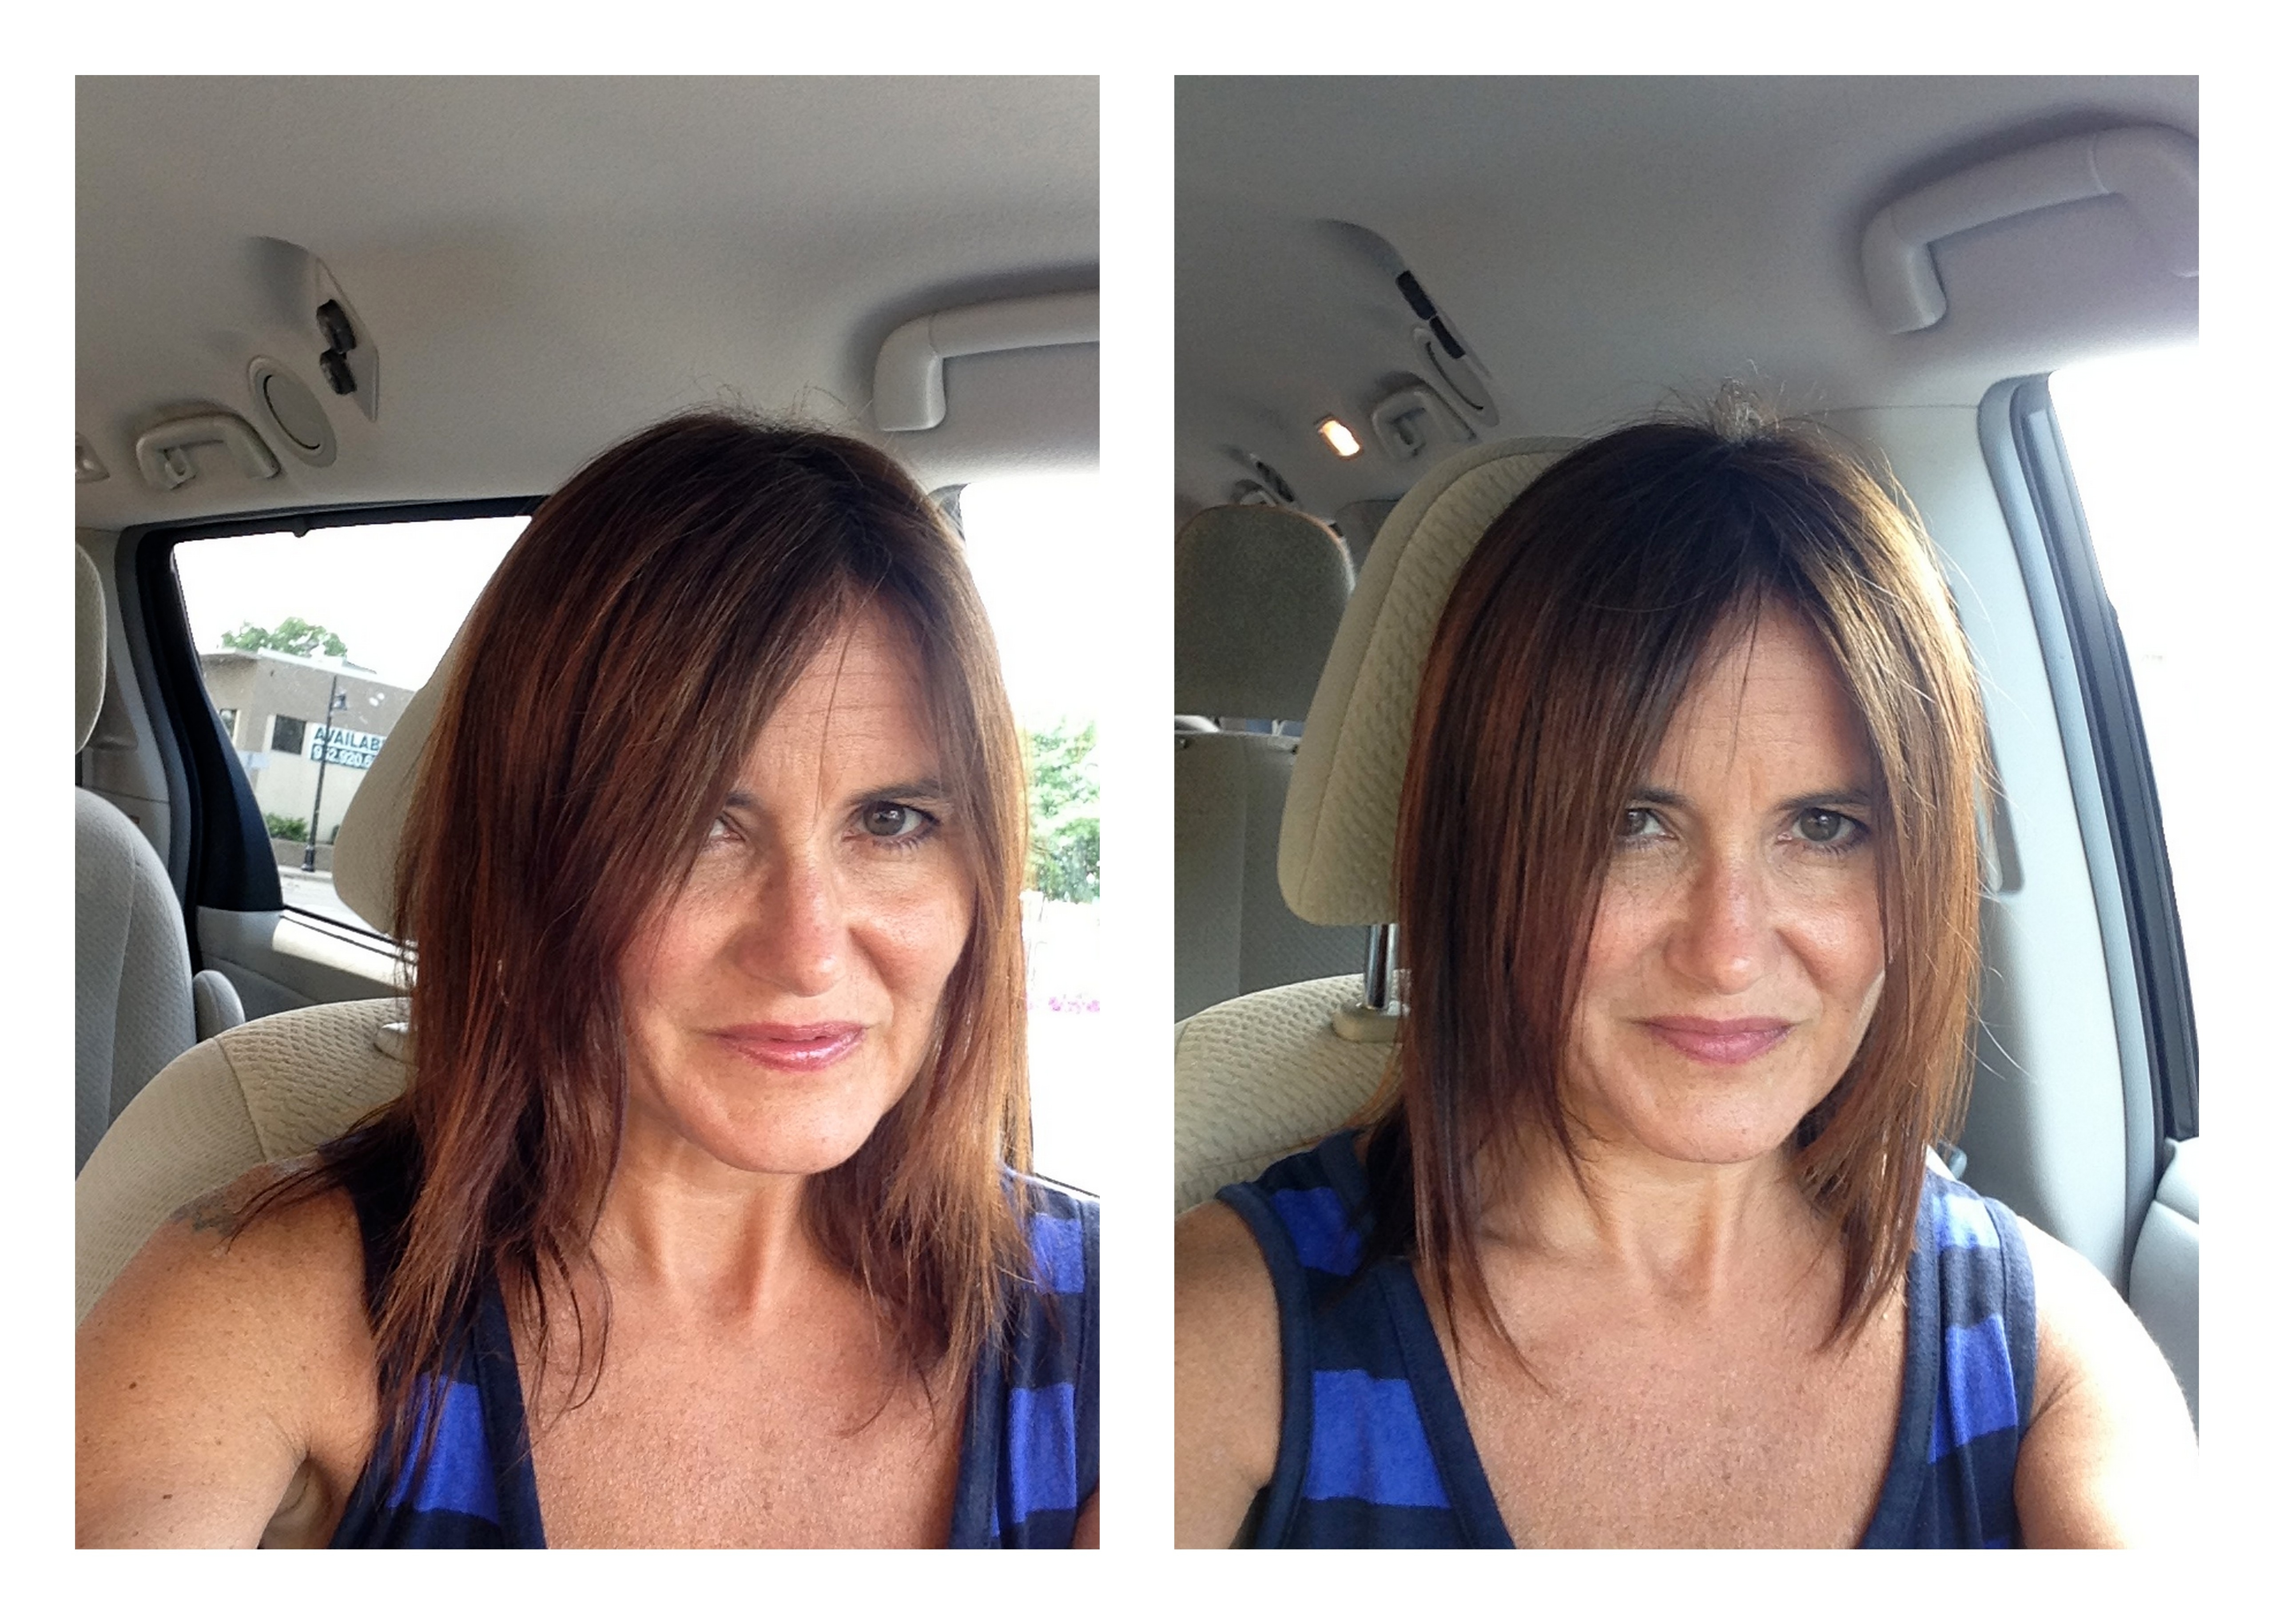 The Girl With The Thin Hair - Sellabit Mum throughout Haircuts For Thin Hair Before And After